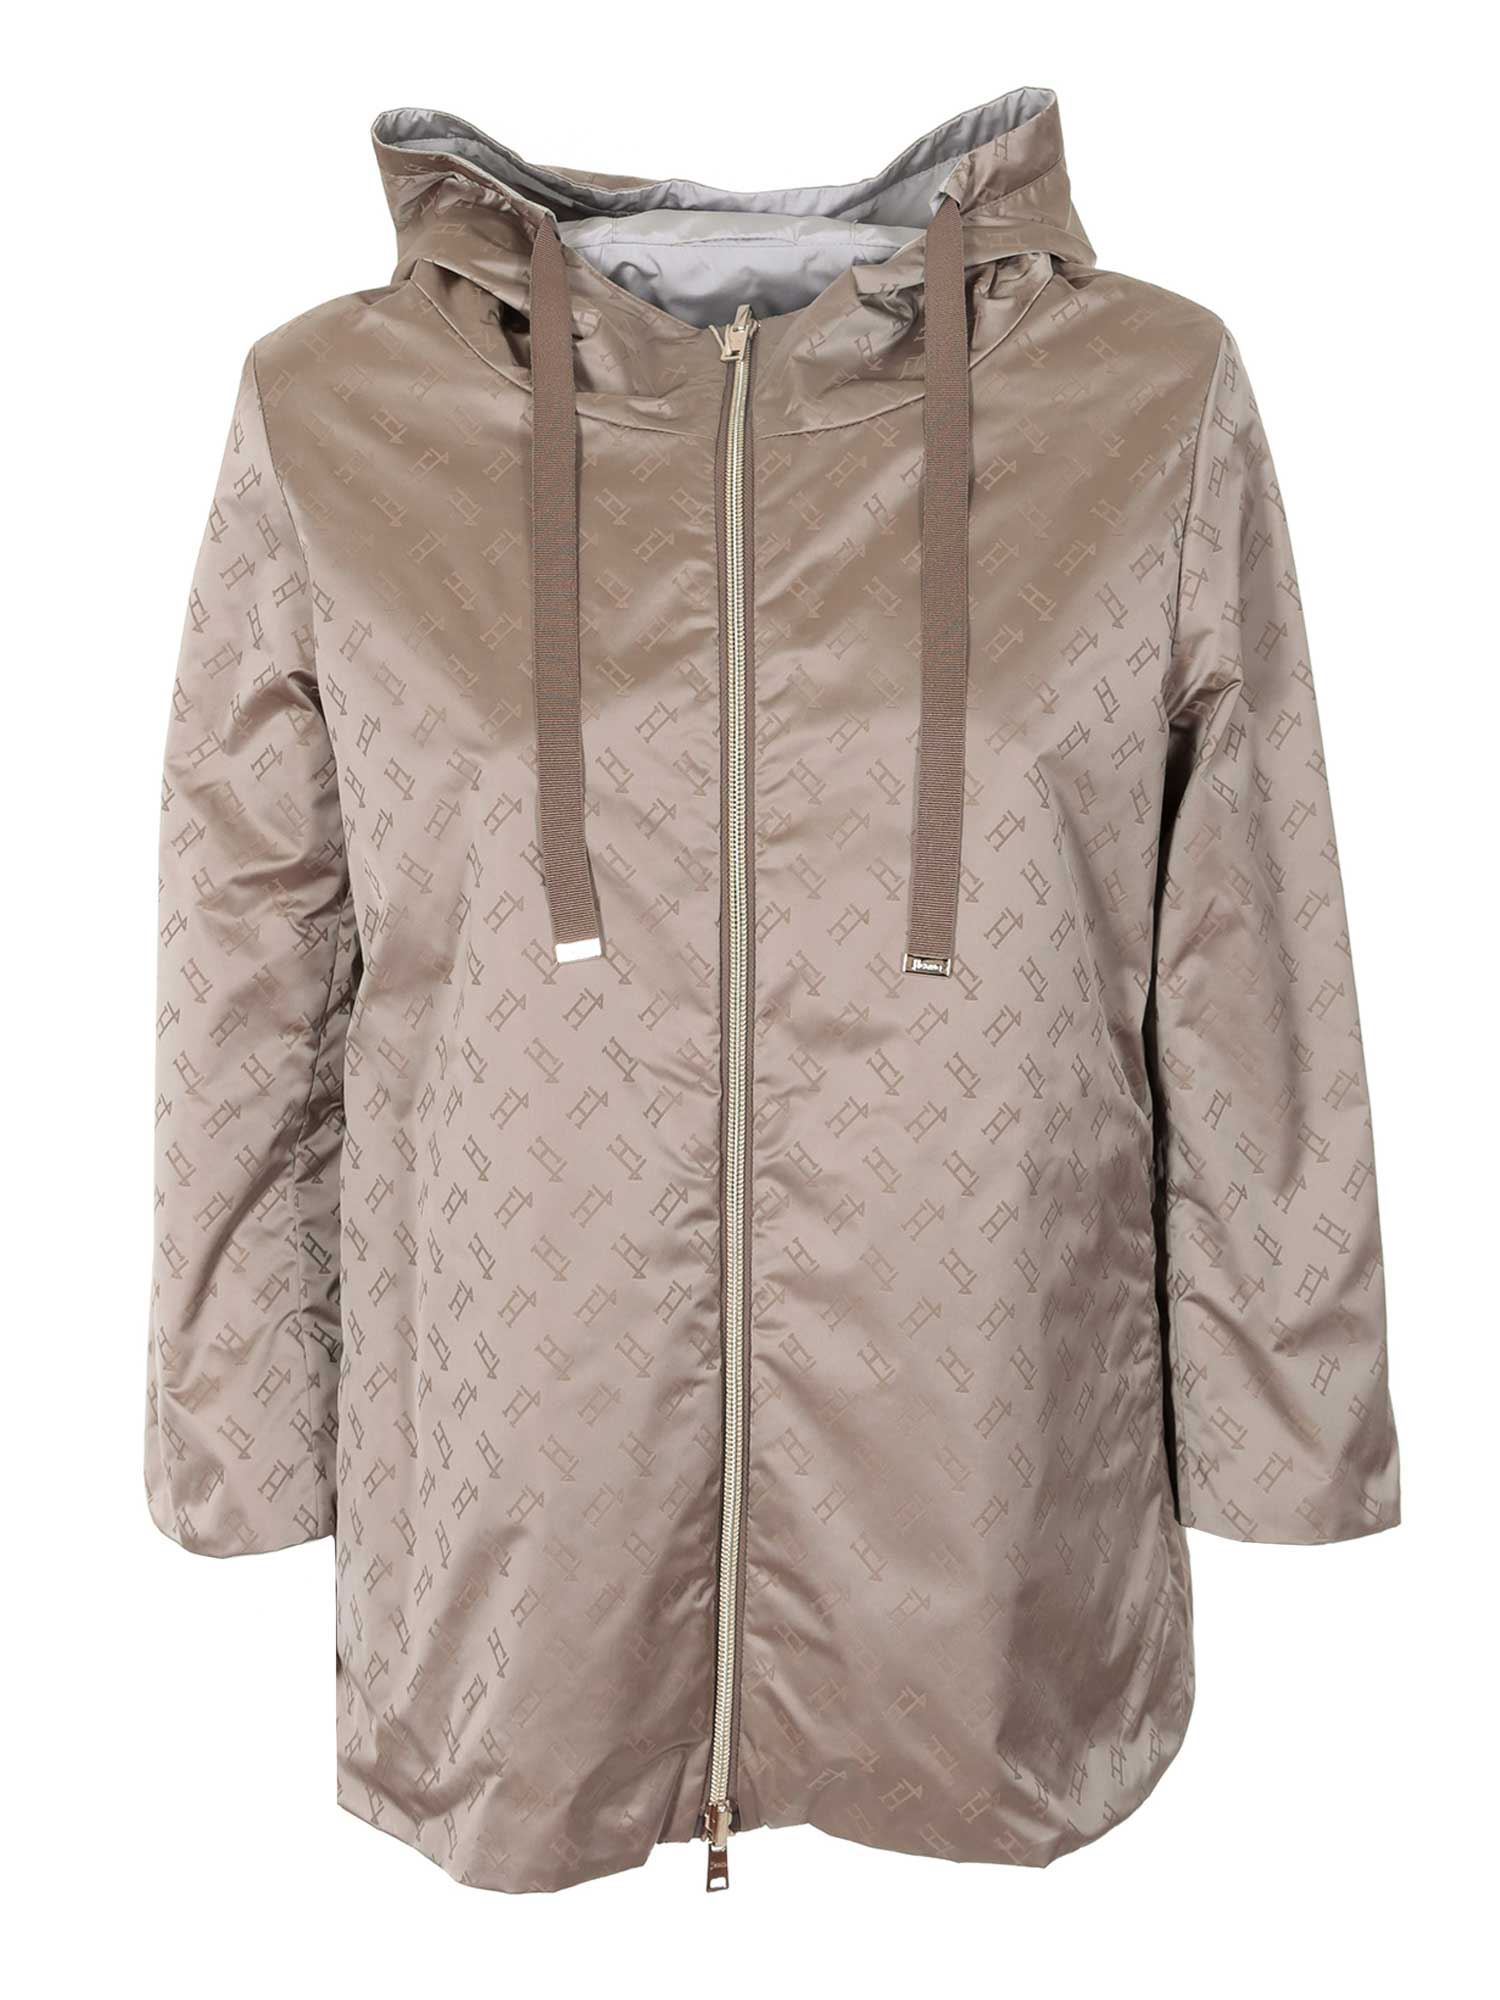 Herno Jackets REVERSIBLE WATERPROOF JACKET IN GREY